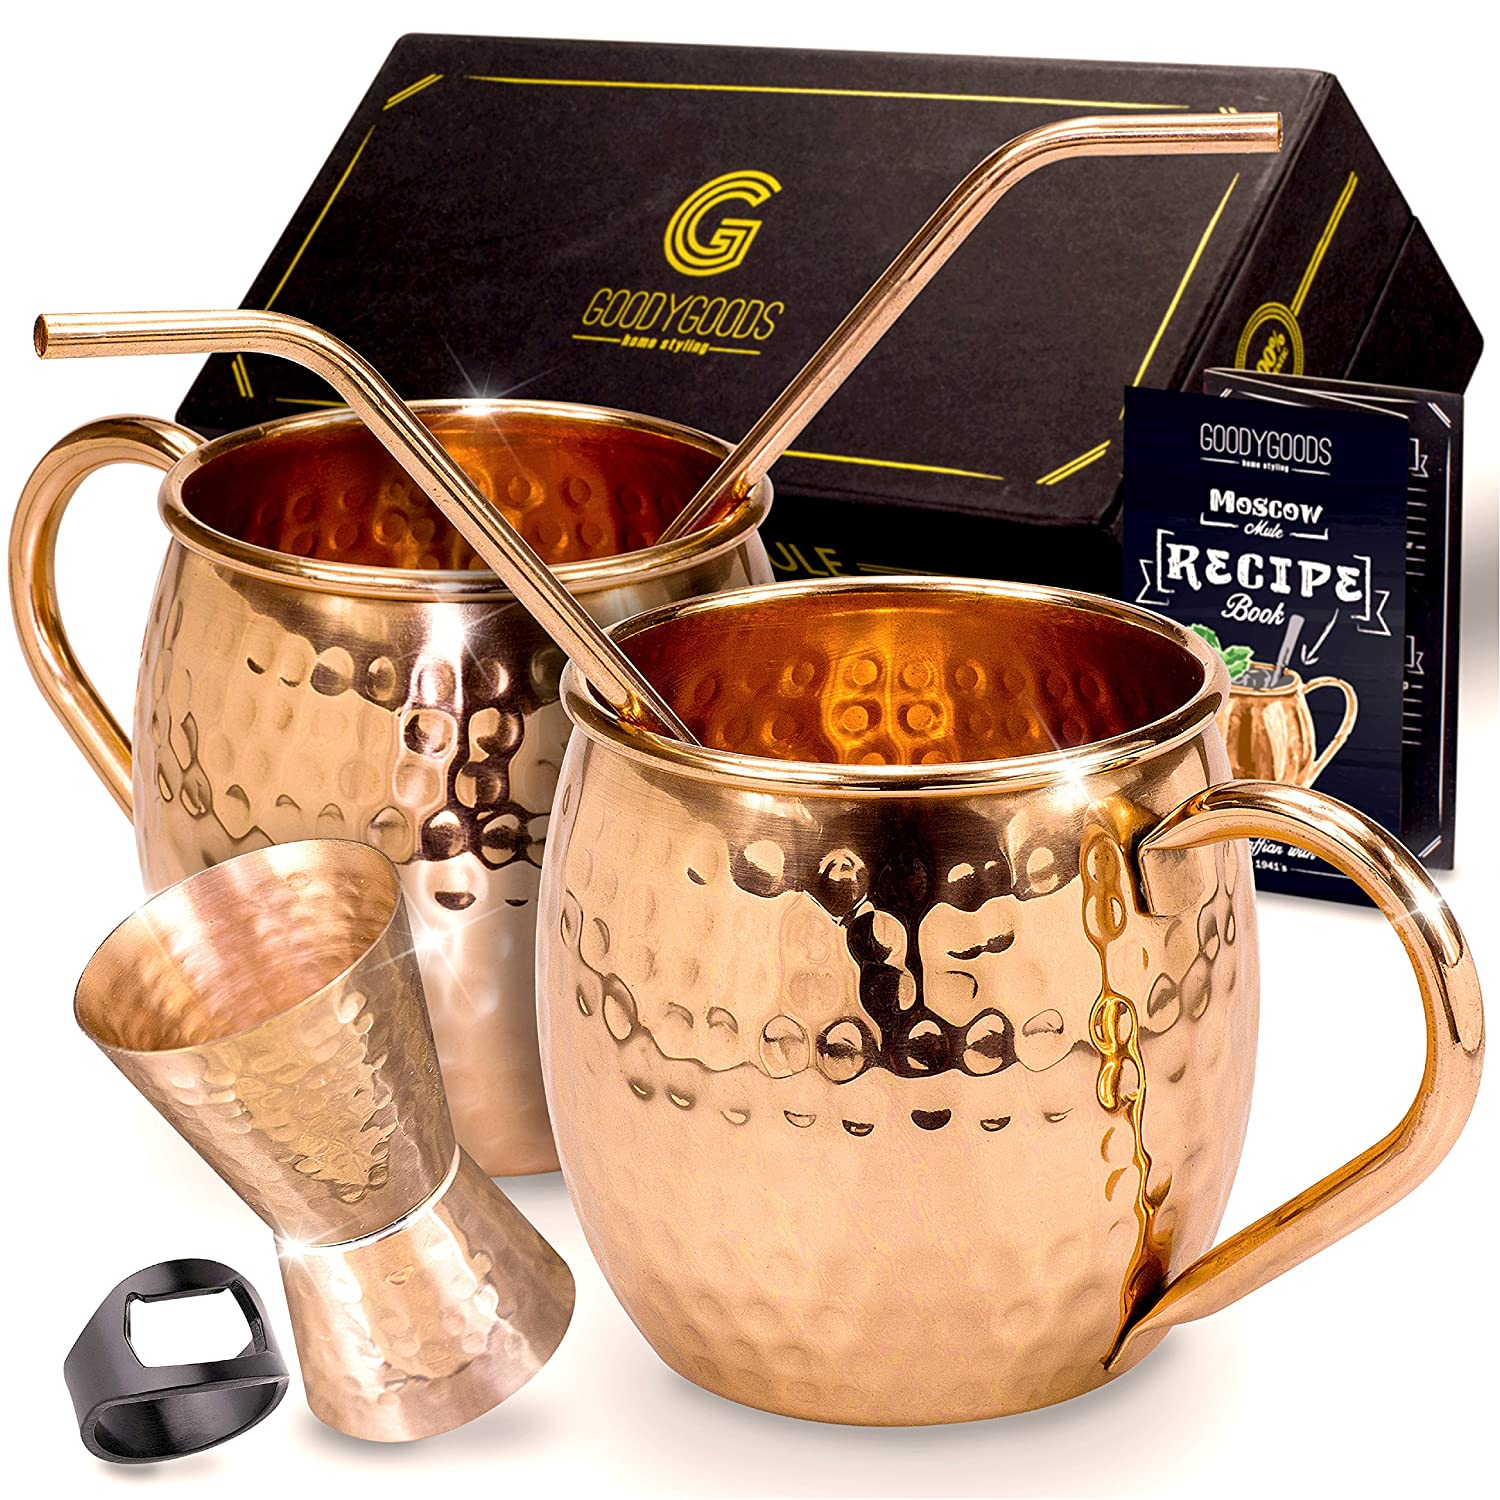 Magnificent Moscow Mule Copper Mugs: Make Any Drink Taste Much Better! 100% Pure Solid Copper His & Hers Gift Set- 2 Hammered 16 OZ Copper Caps 2 Unique Straws, Jigger & Recipe Booklet! (Black, 16oz)